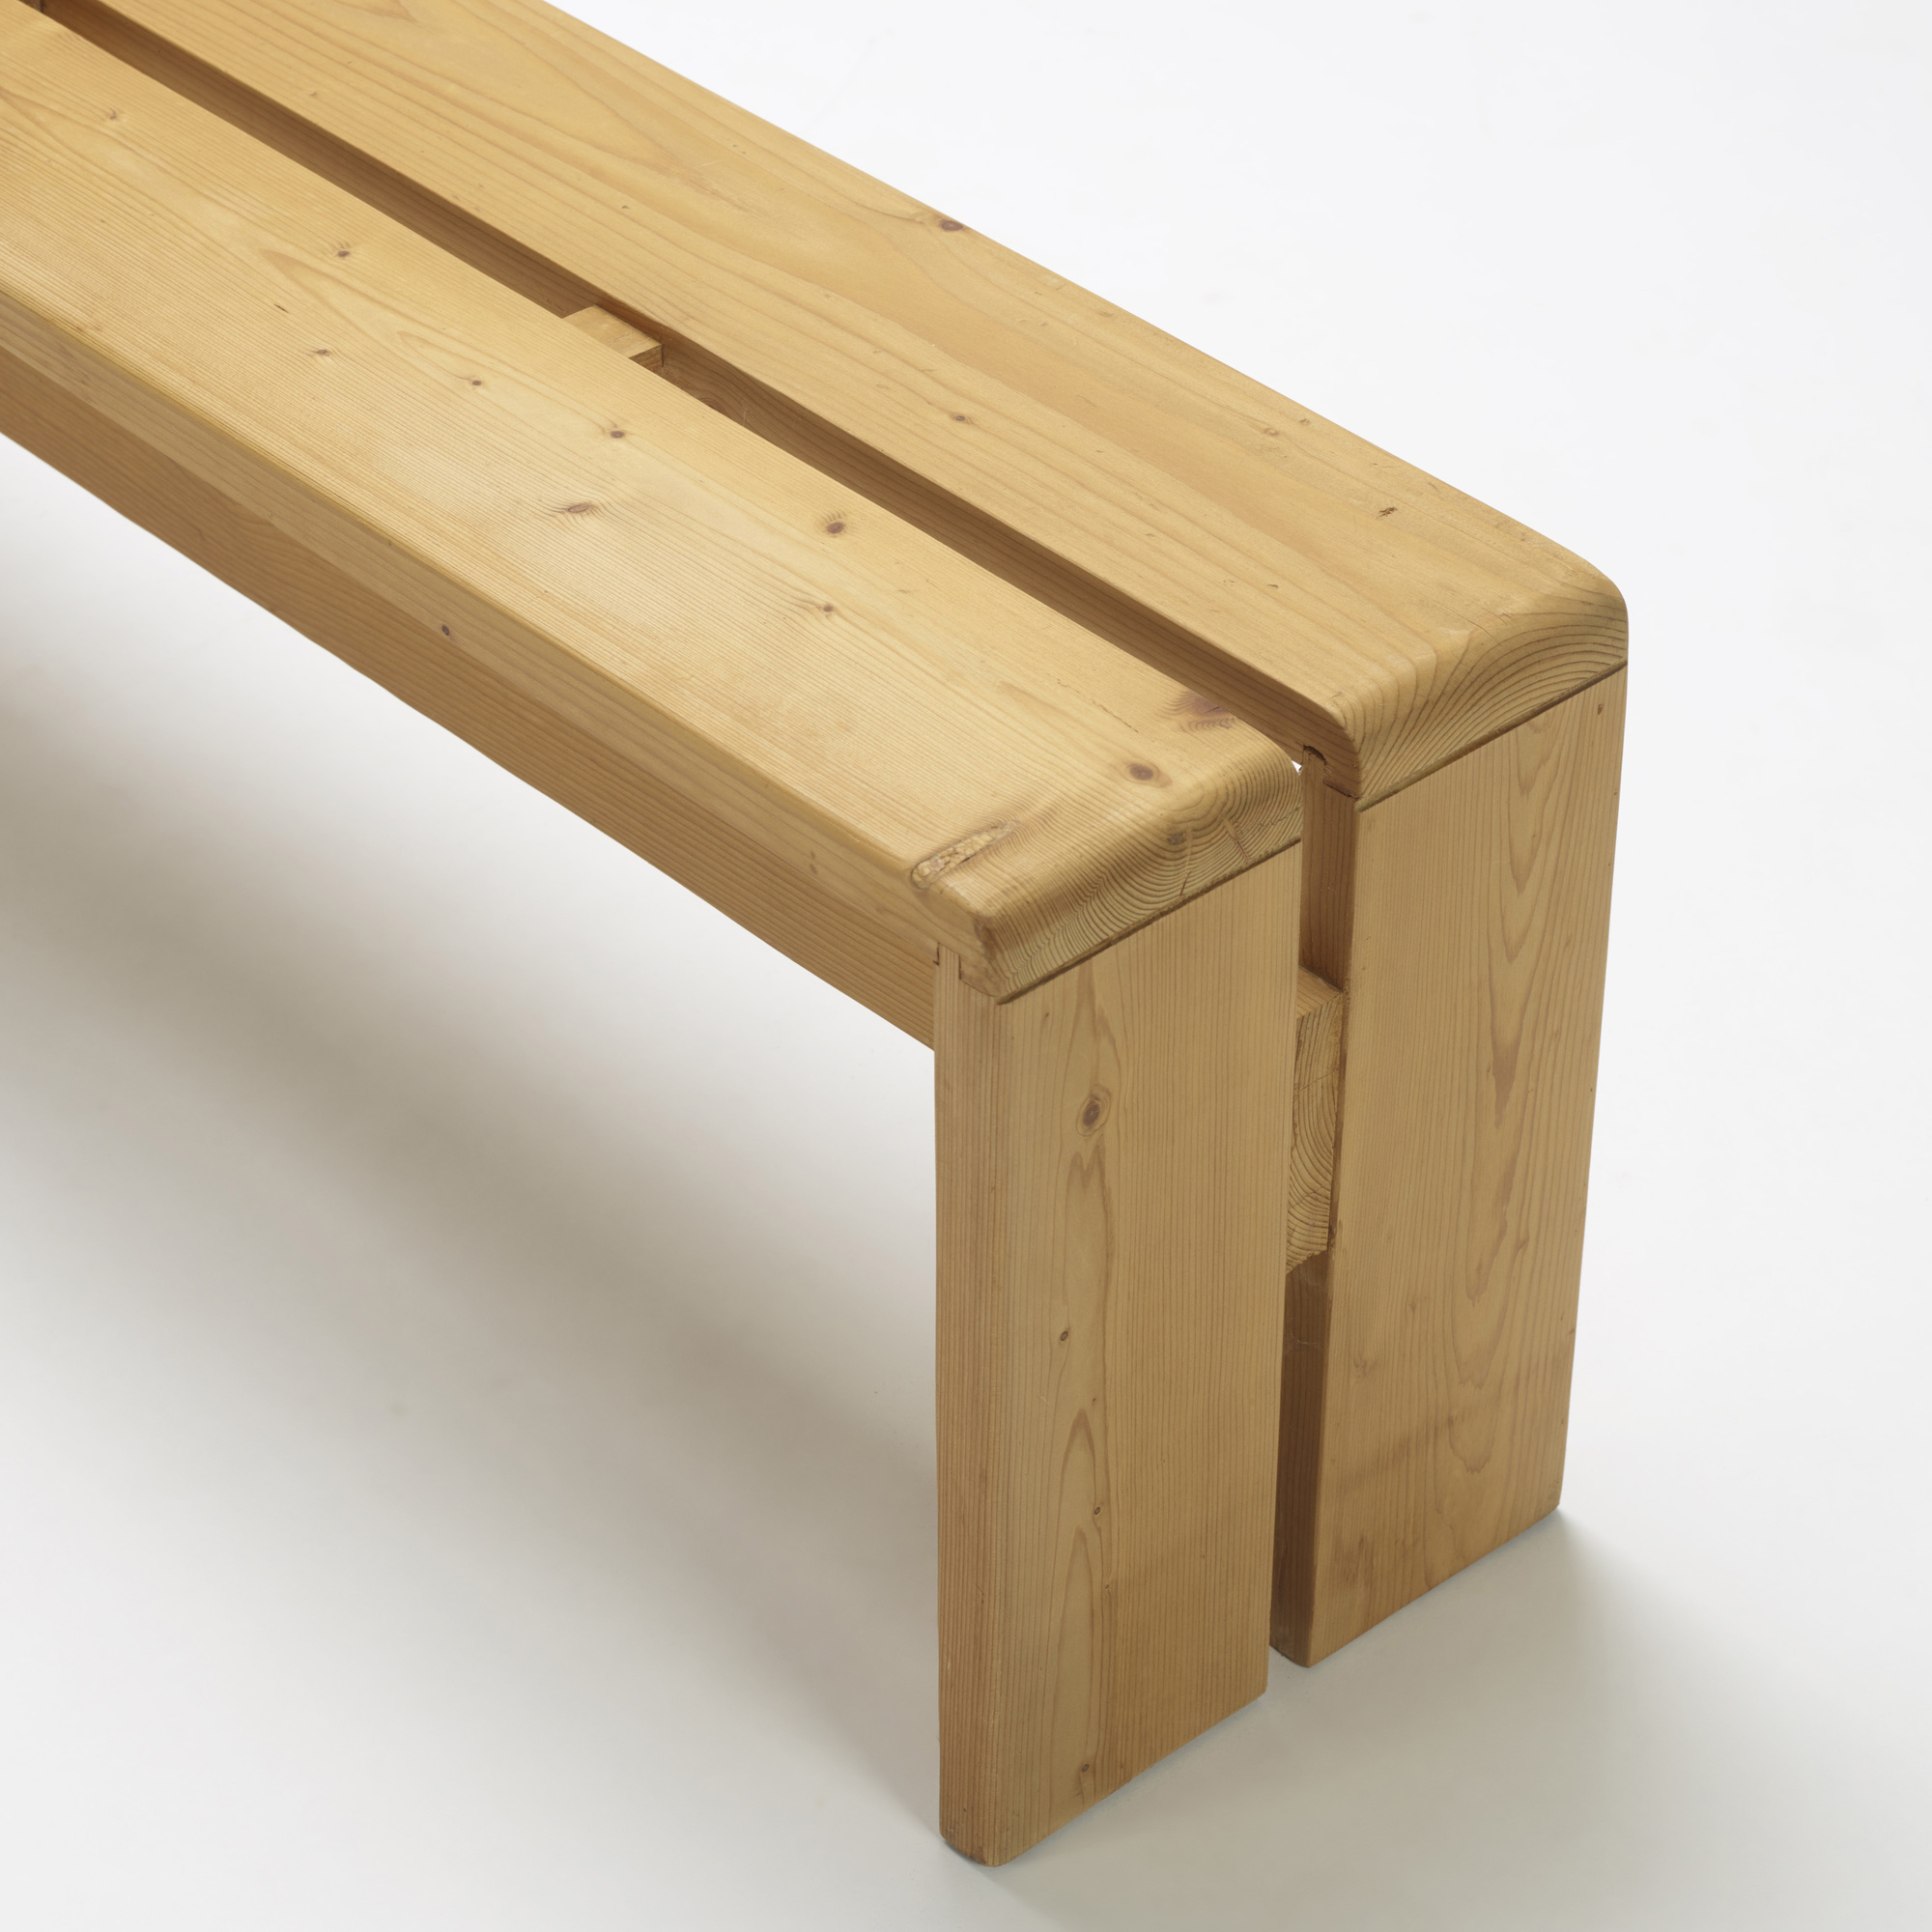 161: Charlotte Perriand / bench from Les Arcs, Savoie (2 of 2)